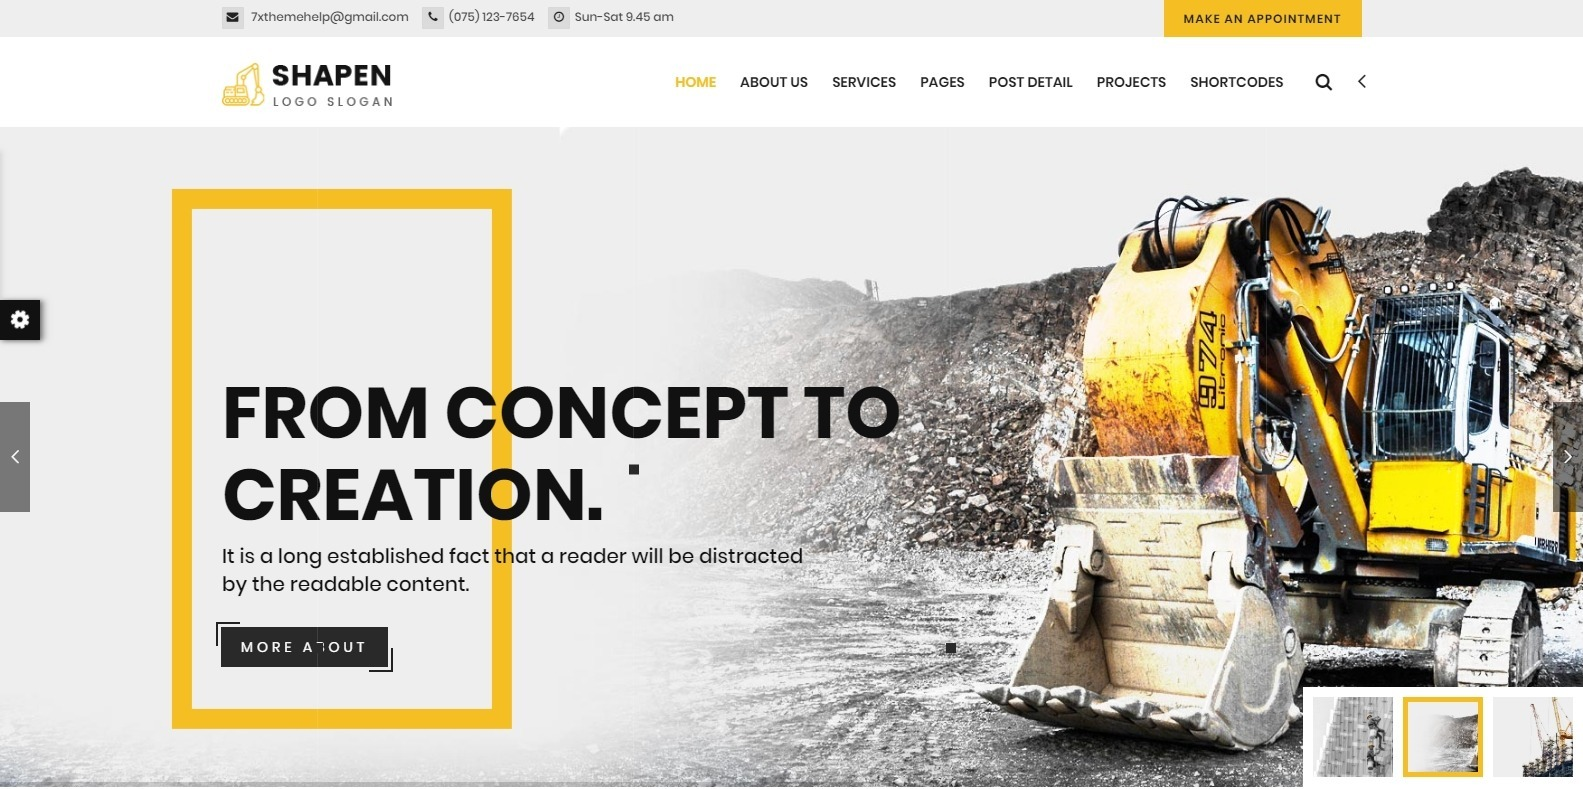 shapen-construction-website-template